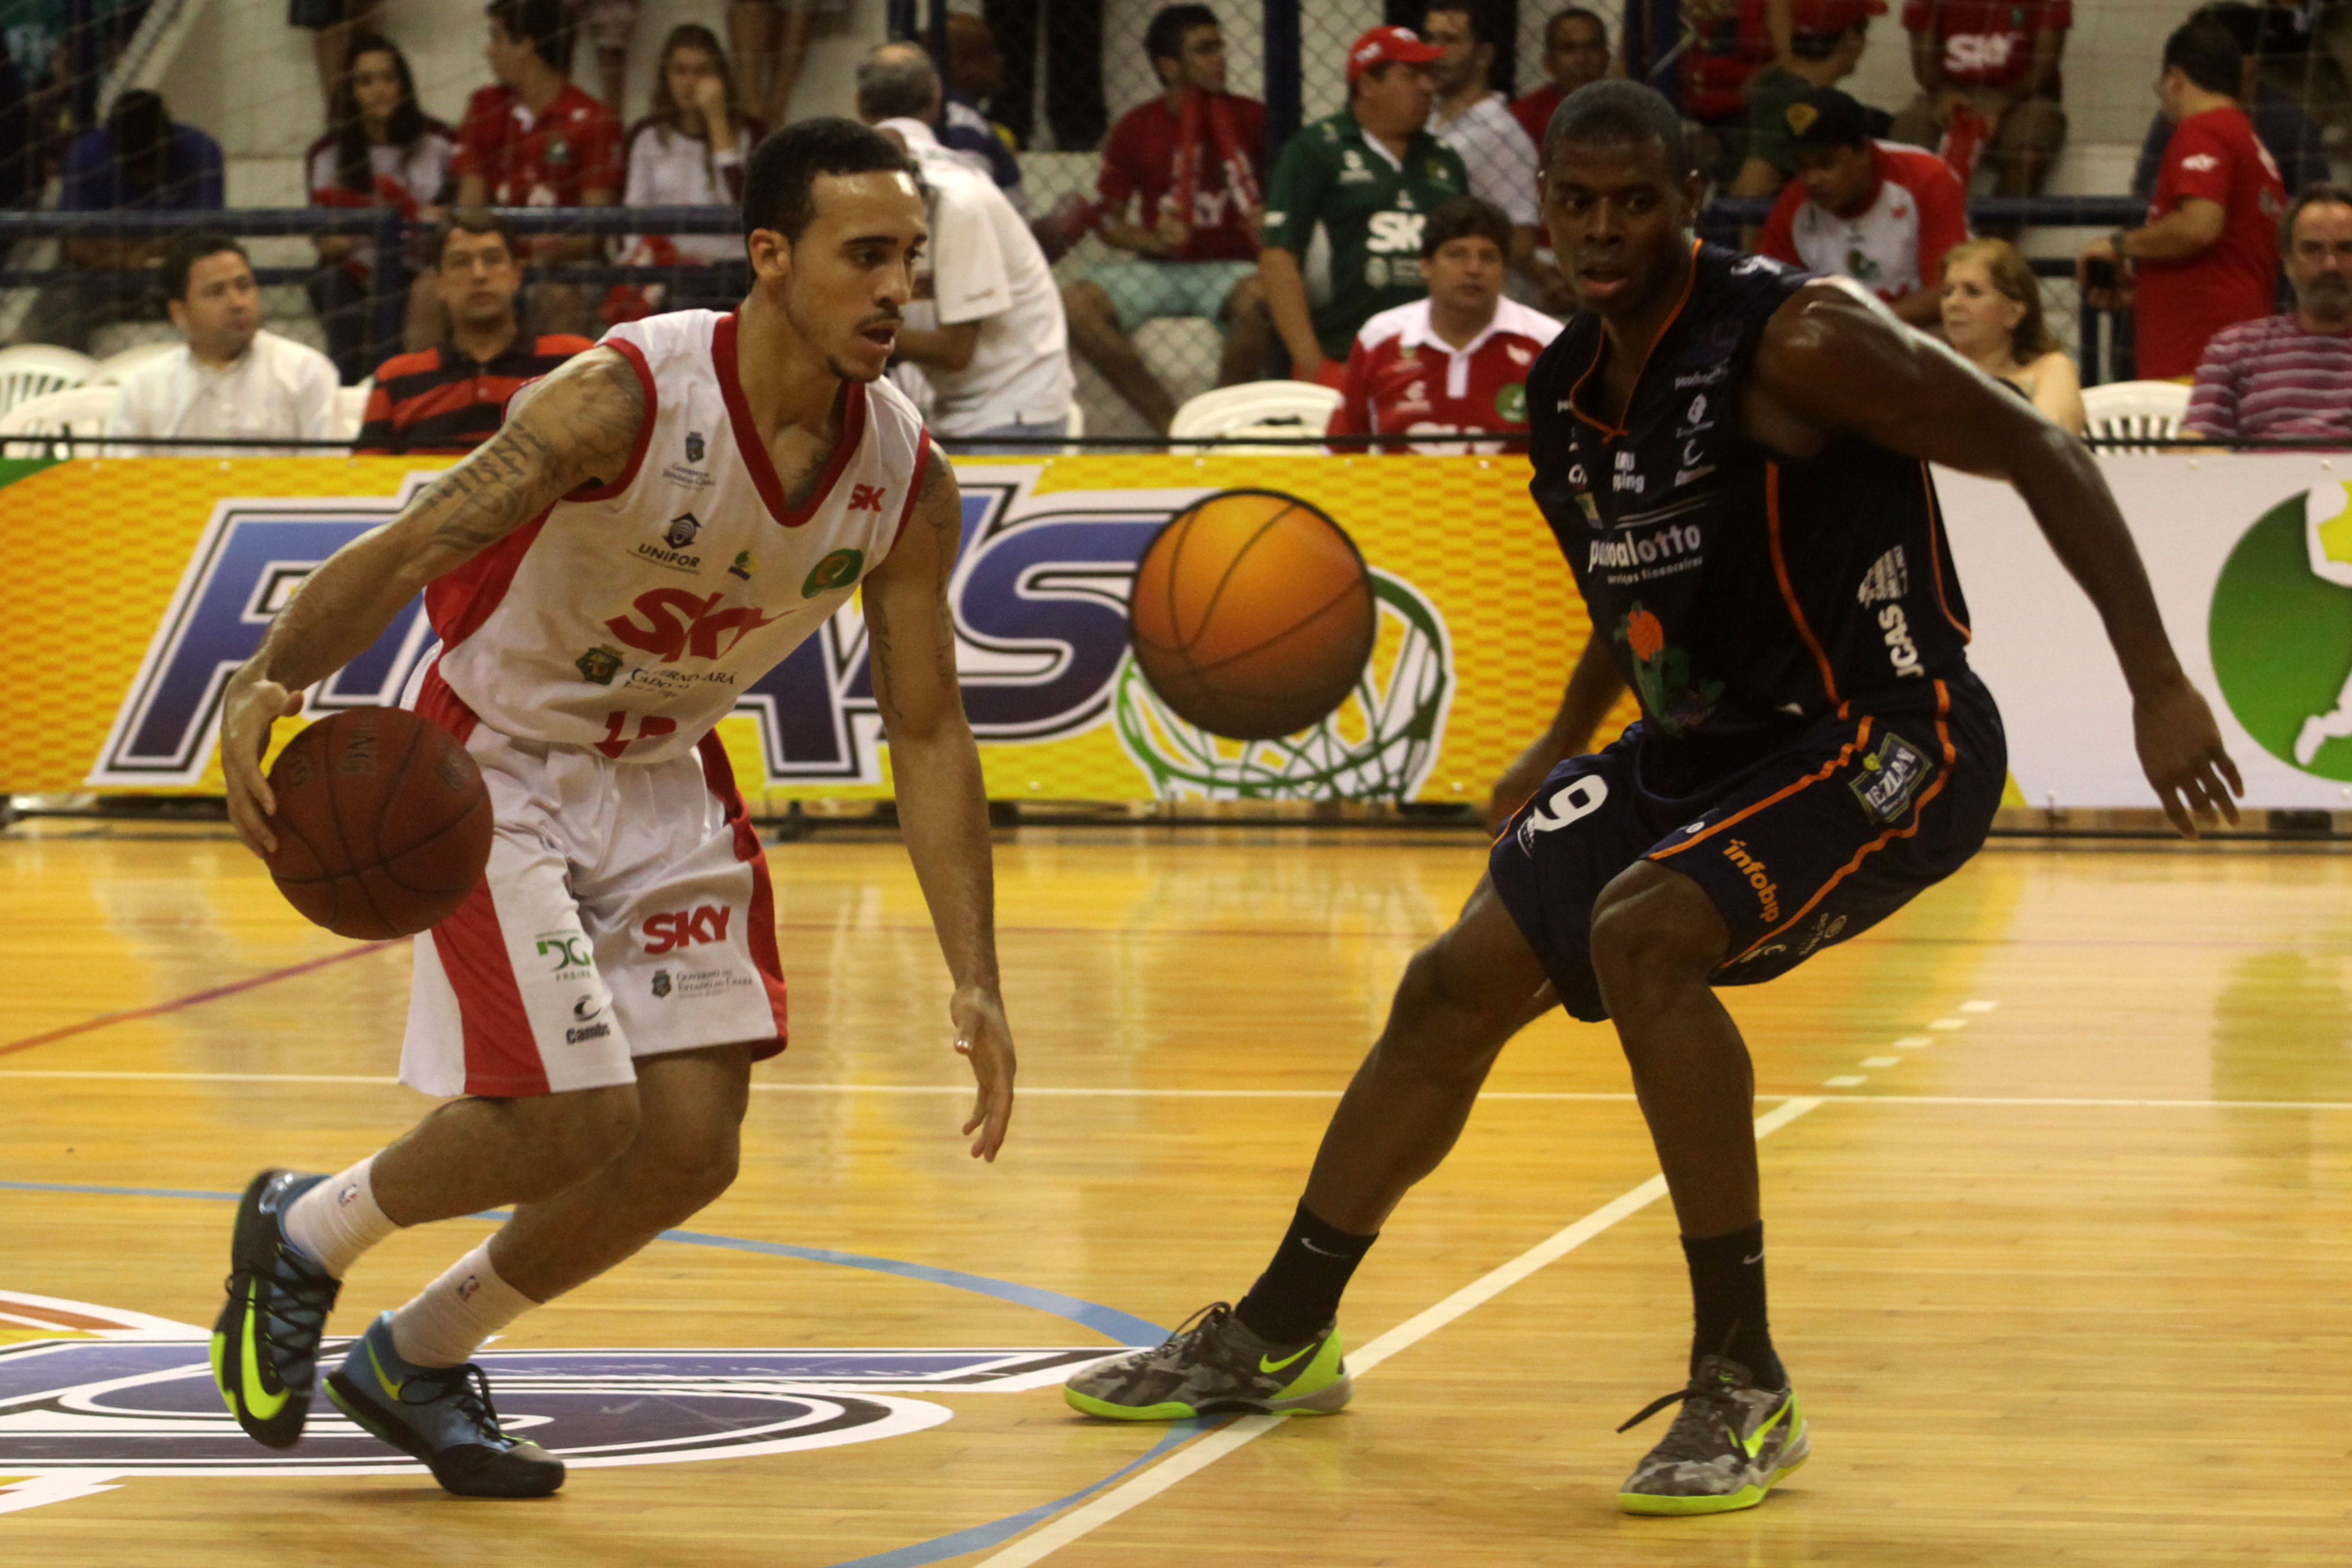 Brandon Brown, do Basquete Cearense, e Gui Deodato, do Bauru